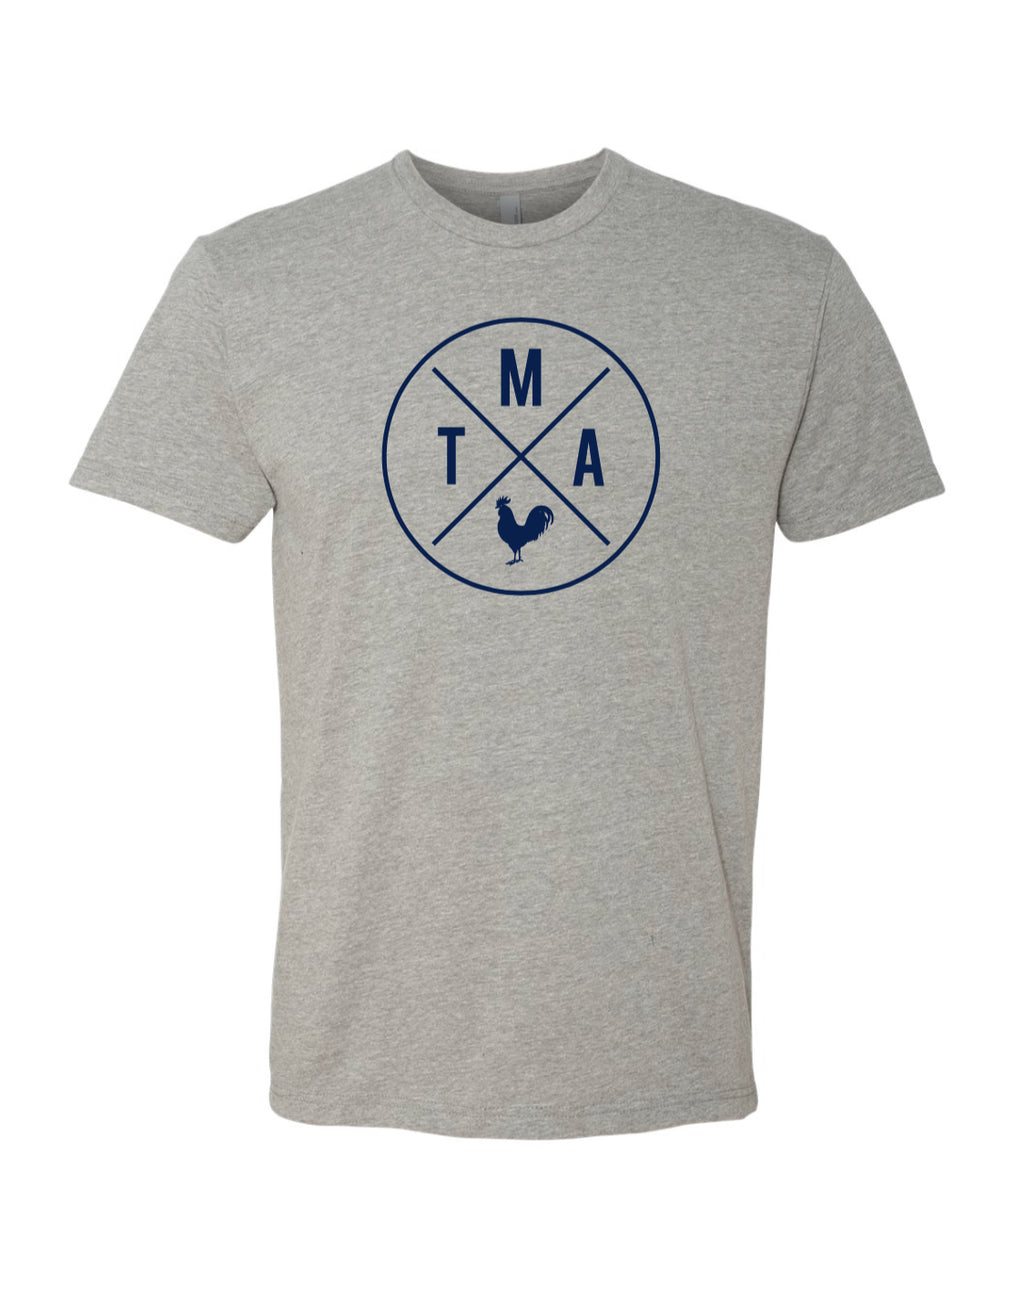 Sold Out: TMA Logo Tee